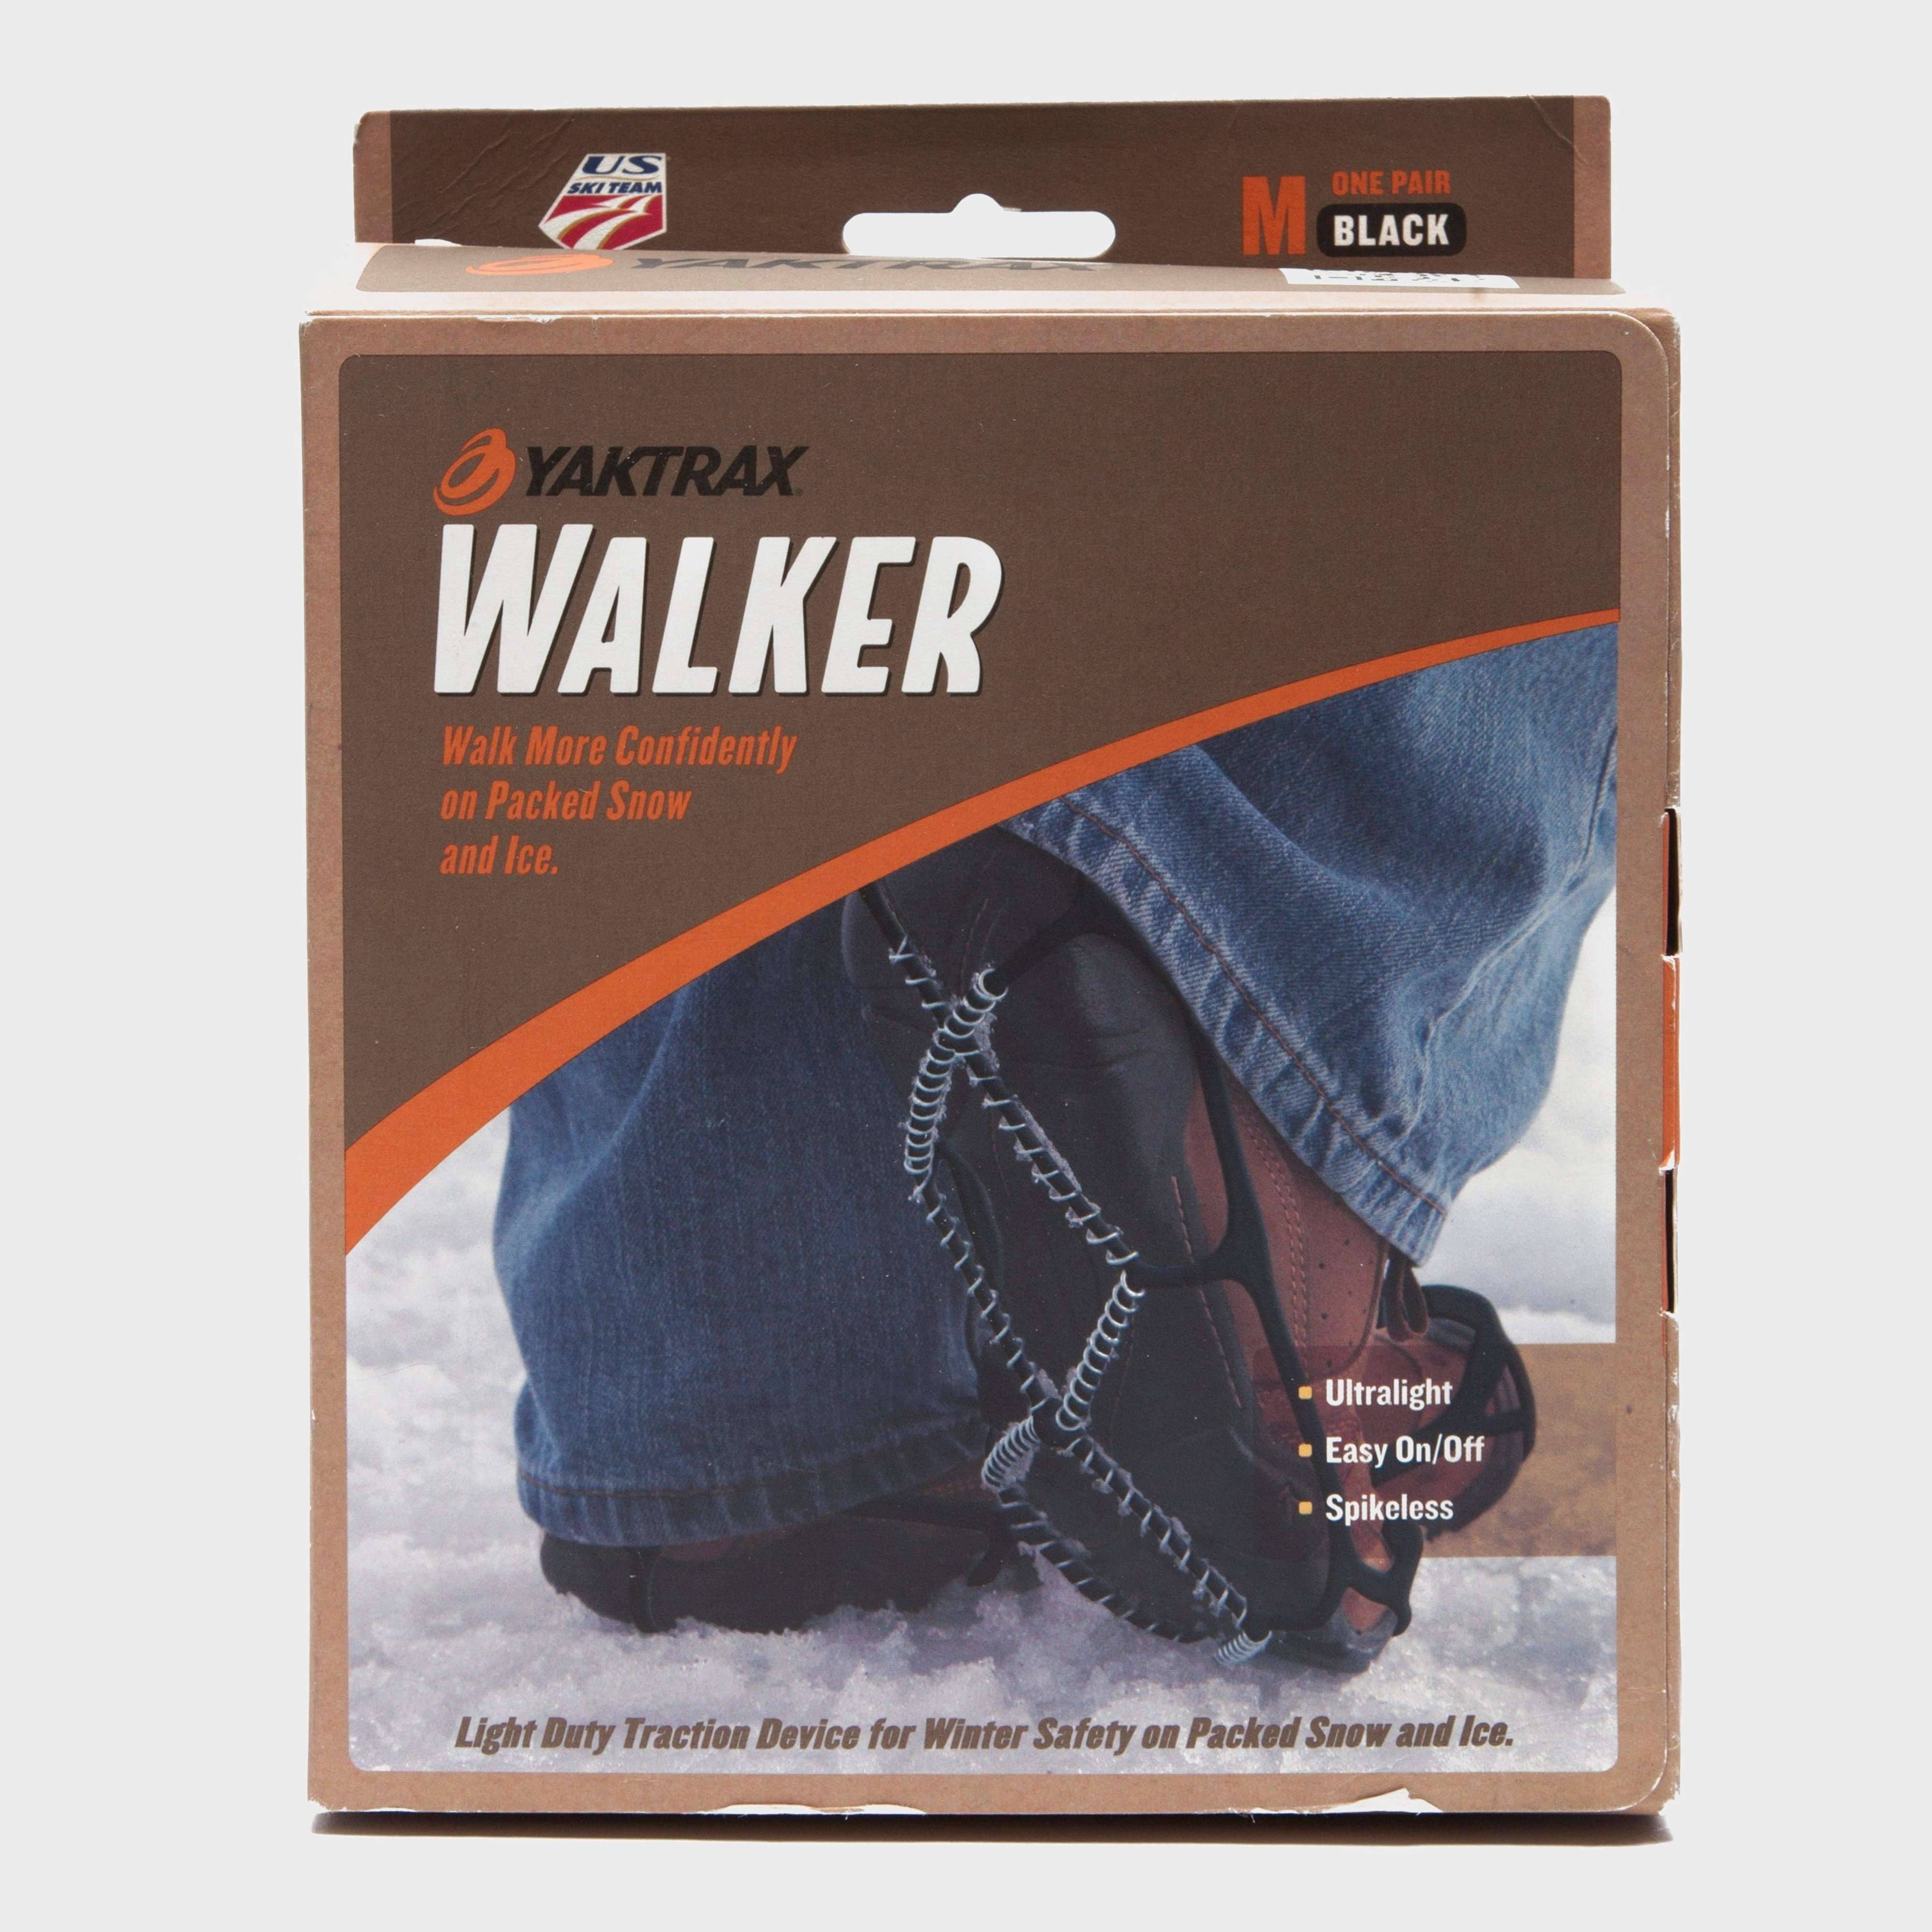 YAKTRAX Walker Snow Grips